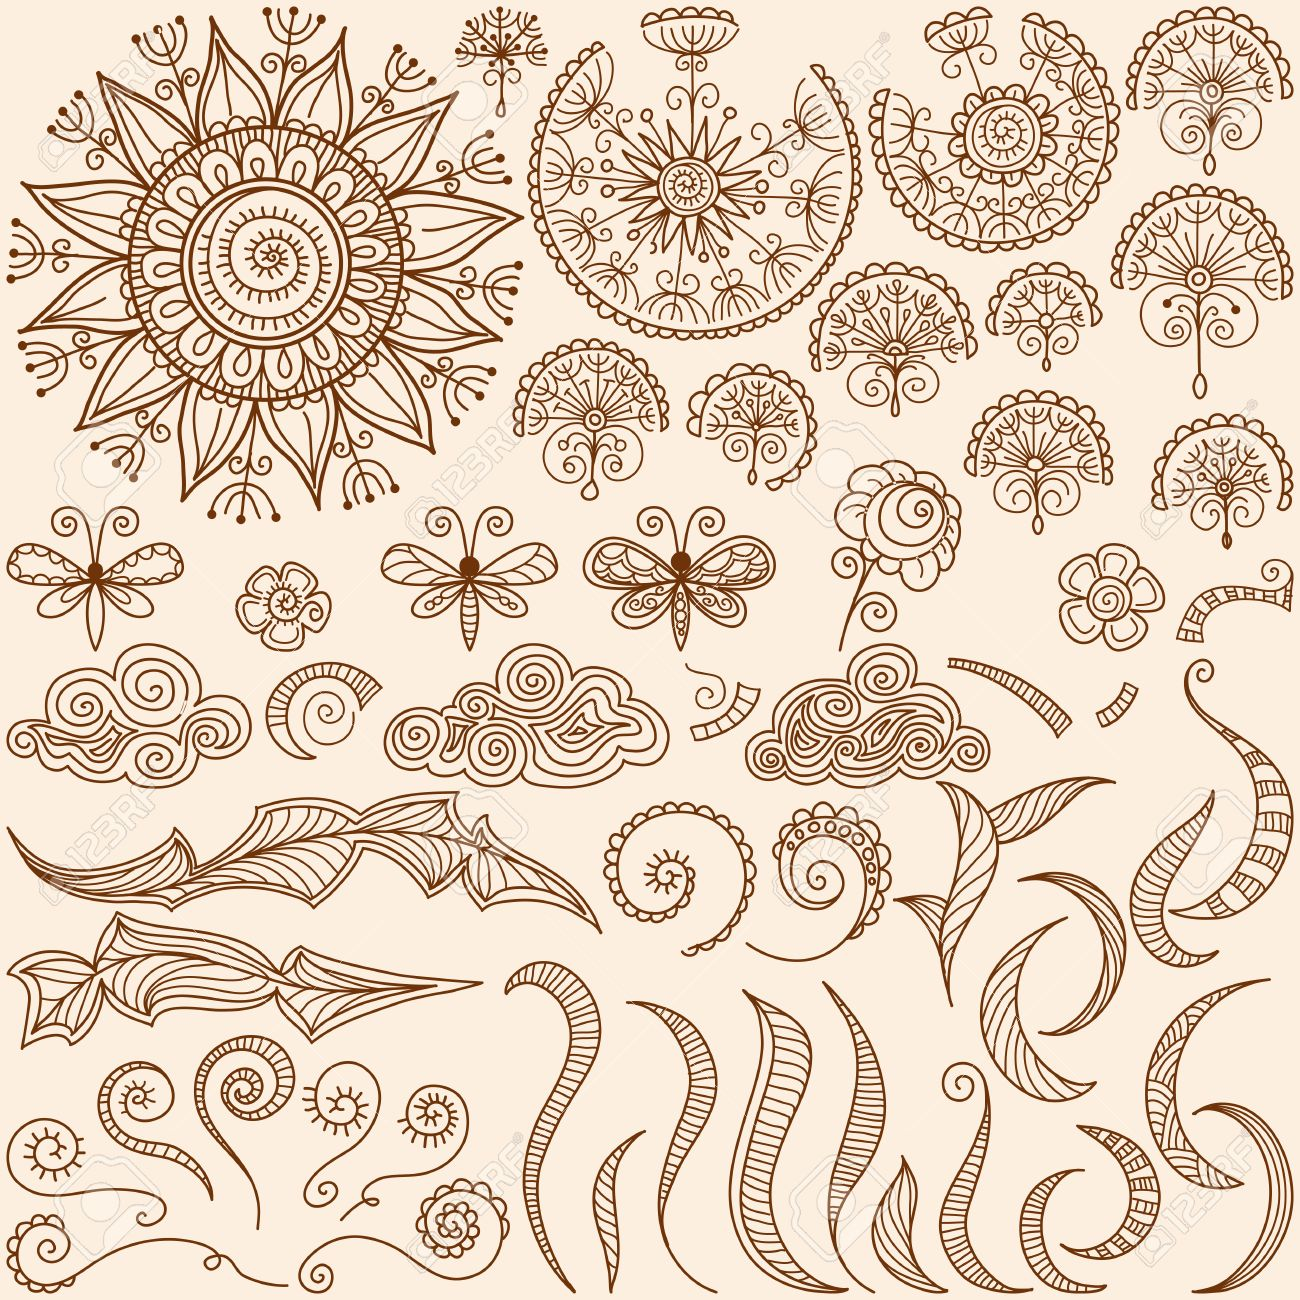 Vector Hand Drawn Henna Mehndi Tattoo Doodle Design Elements